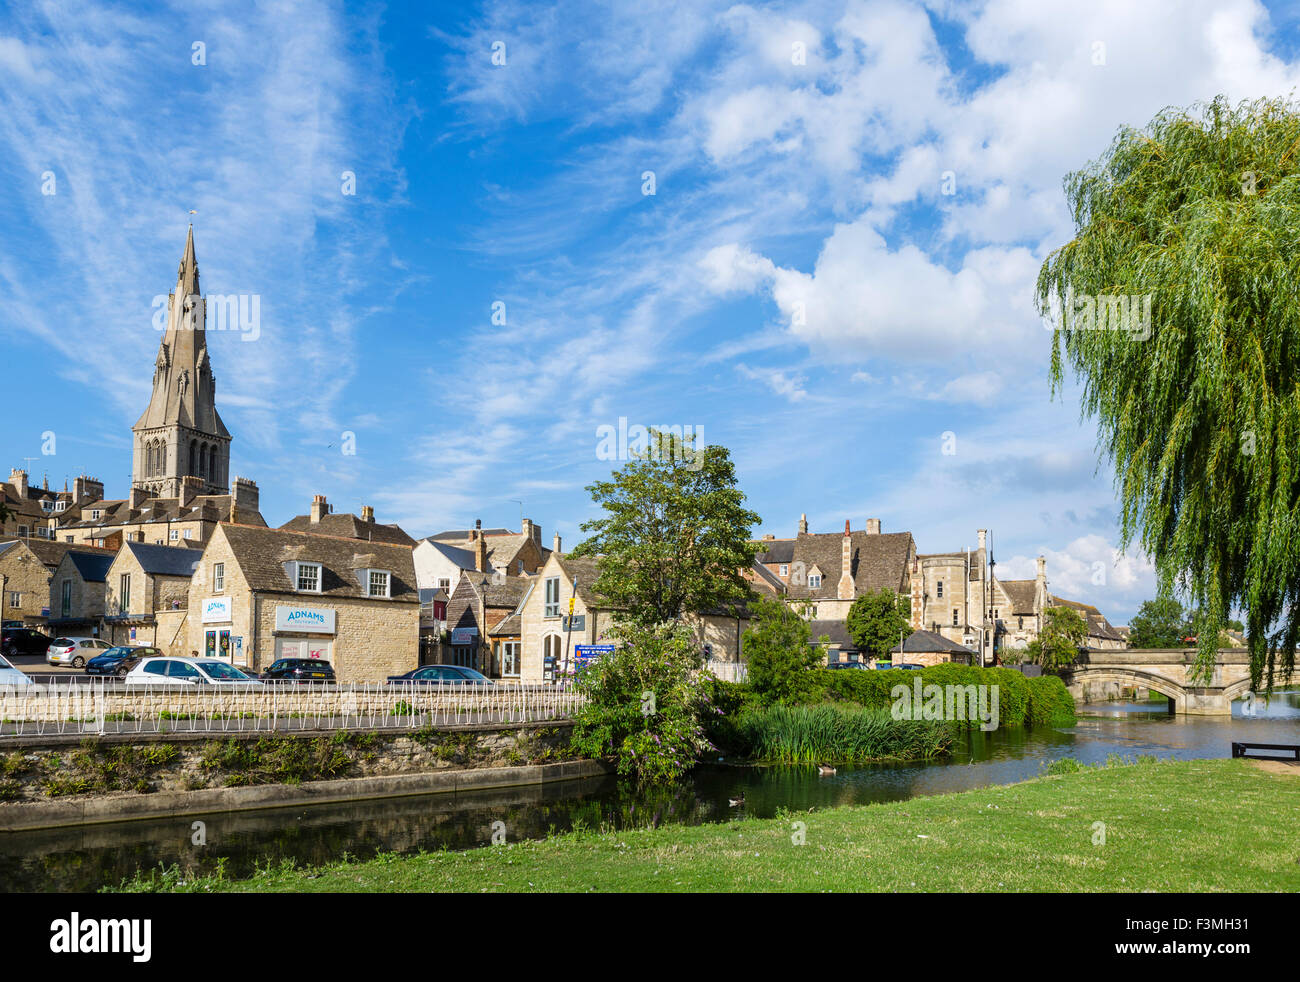 The spire of St Mary's Church from the Meadows, Stamford, Lincolnshire, England, UK - Stock Image